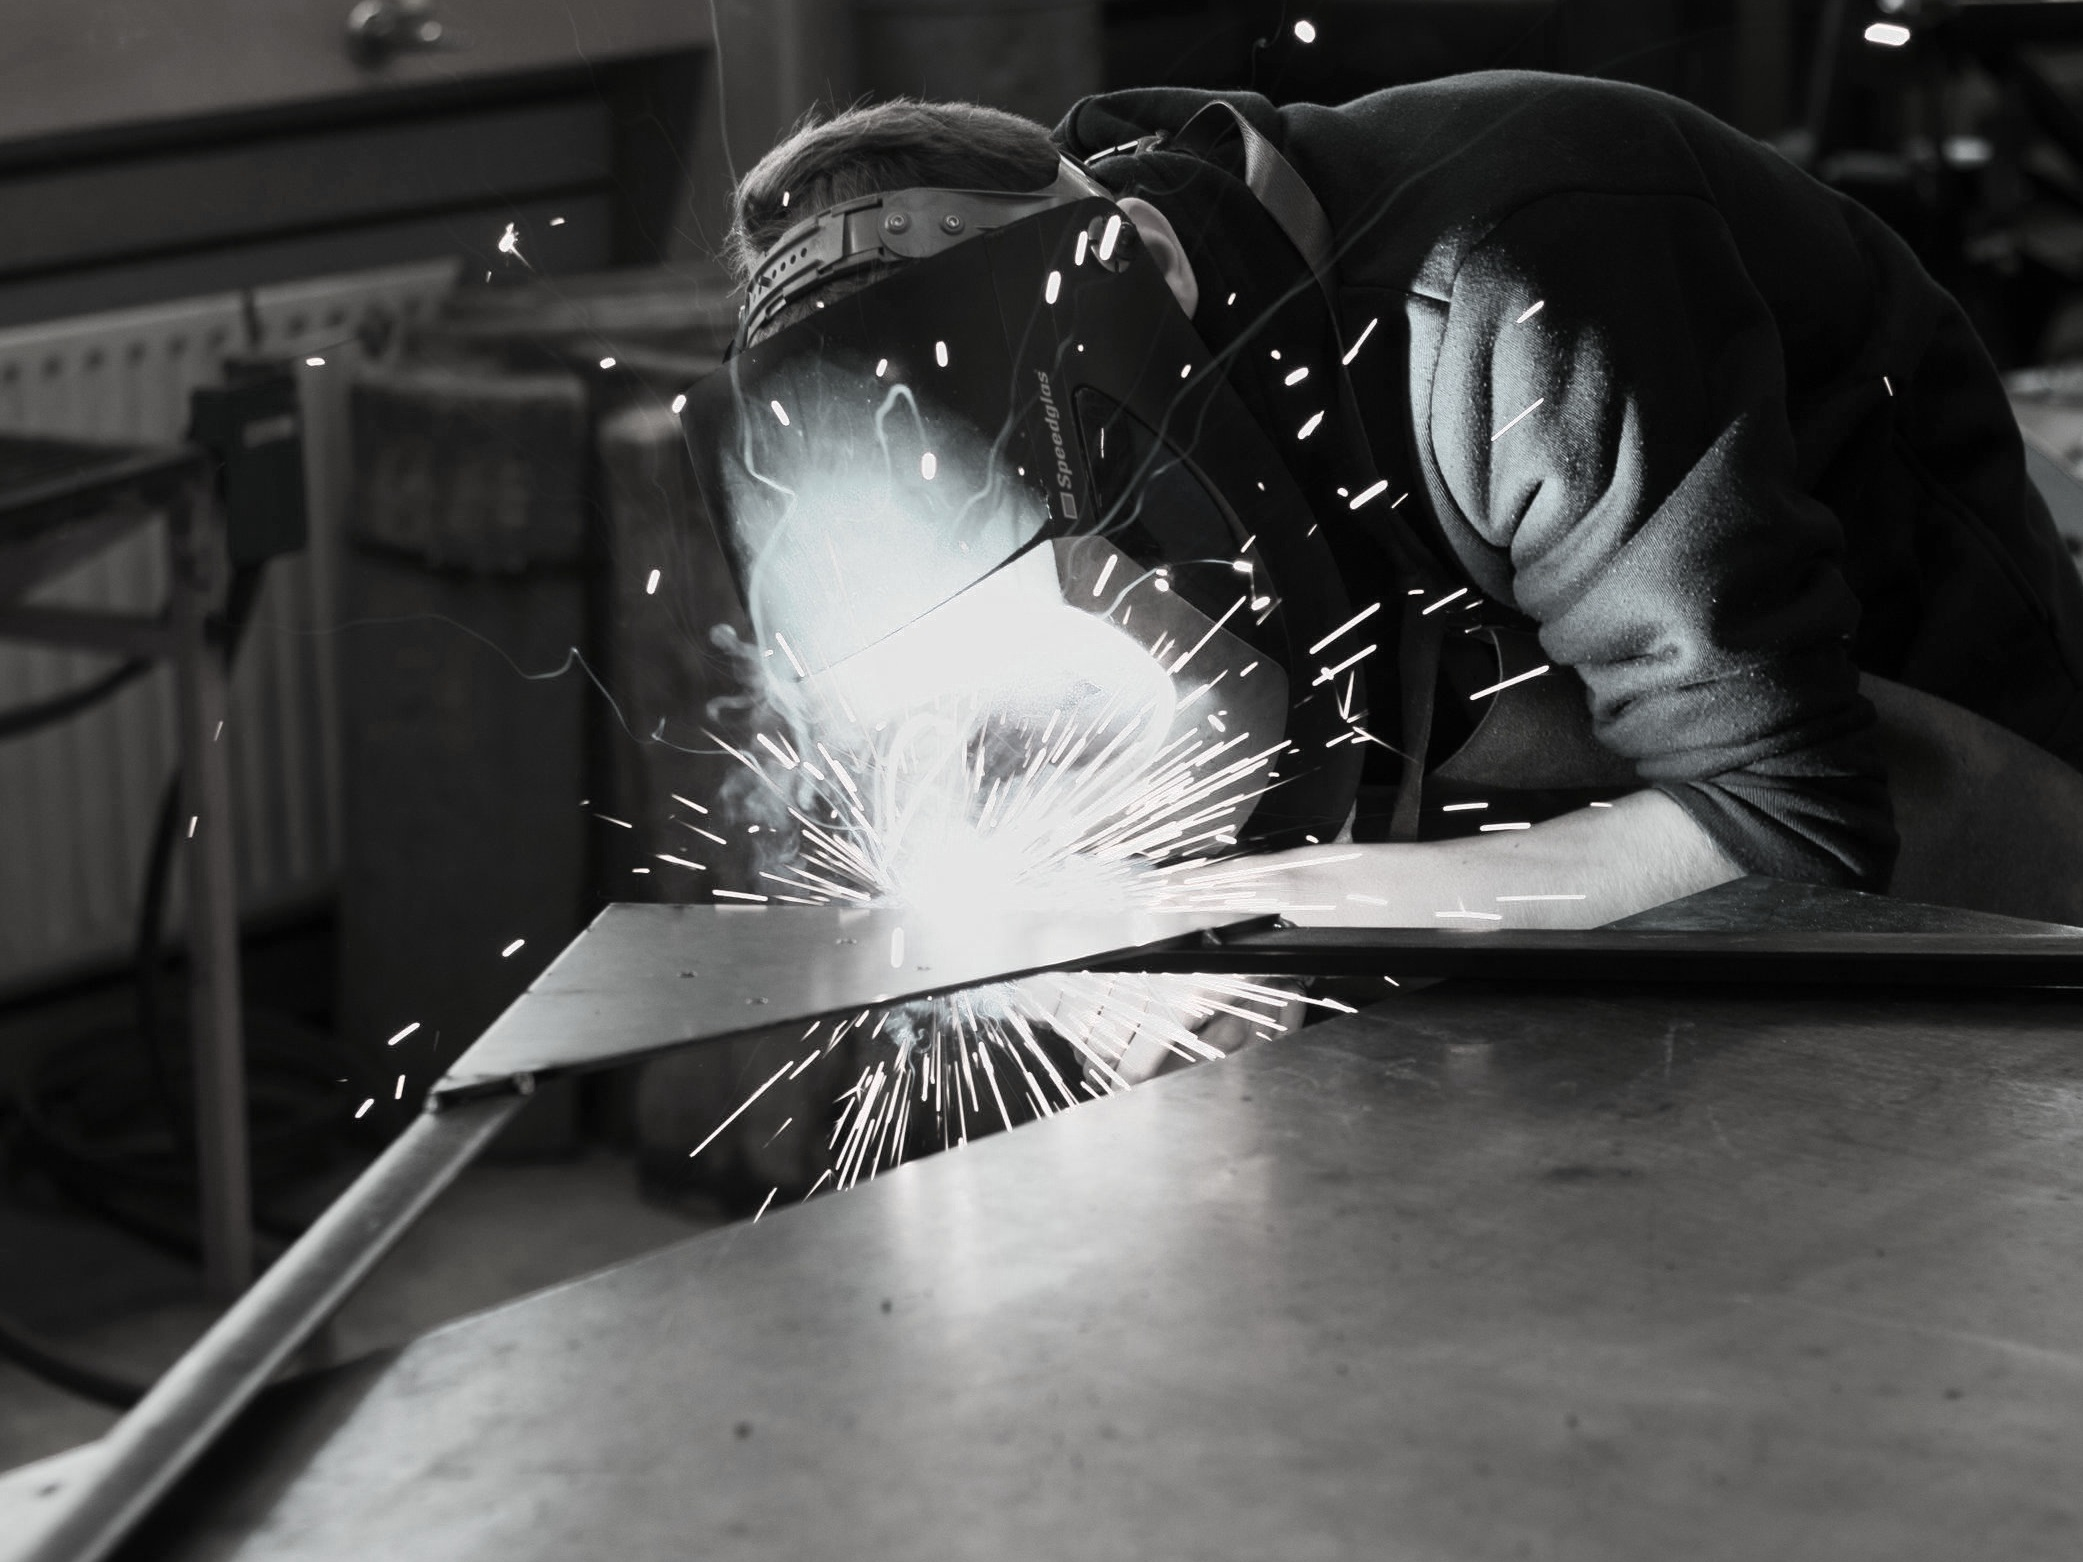 manufacturing - We work with a number of local manufacturers for our products, ensuring an uninterrupted supply line. We maximise our wealth of industry experience and expertise to drive each project to a committed timescale and budget.